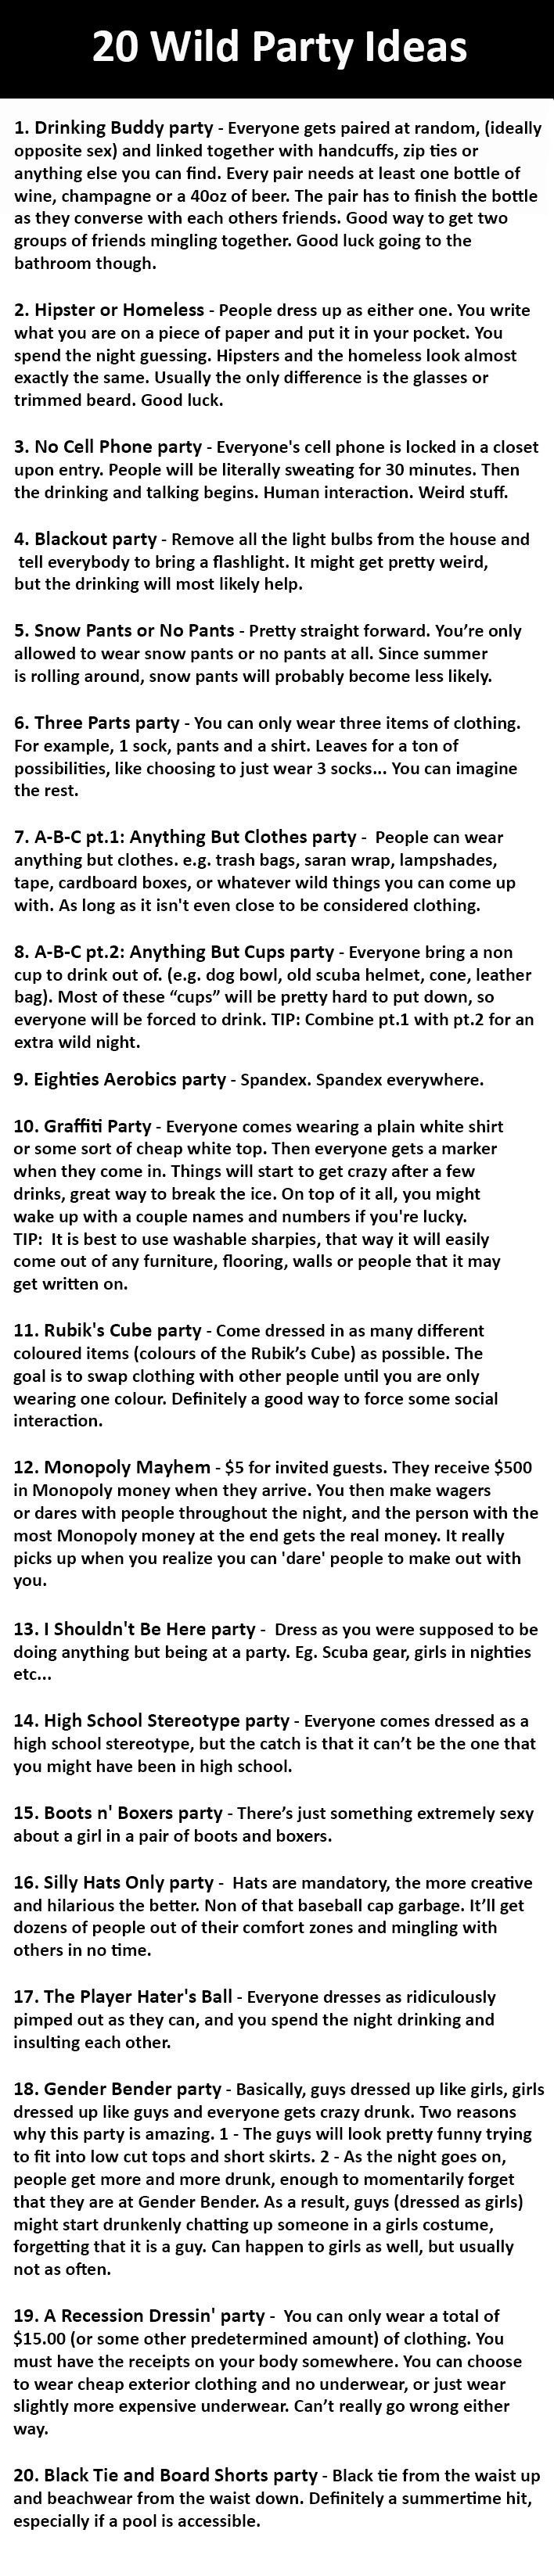 Check out these strange party ideas!